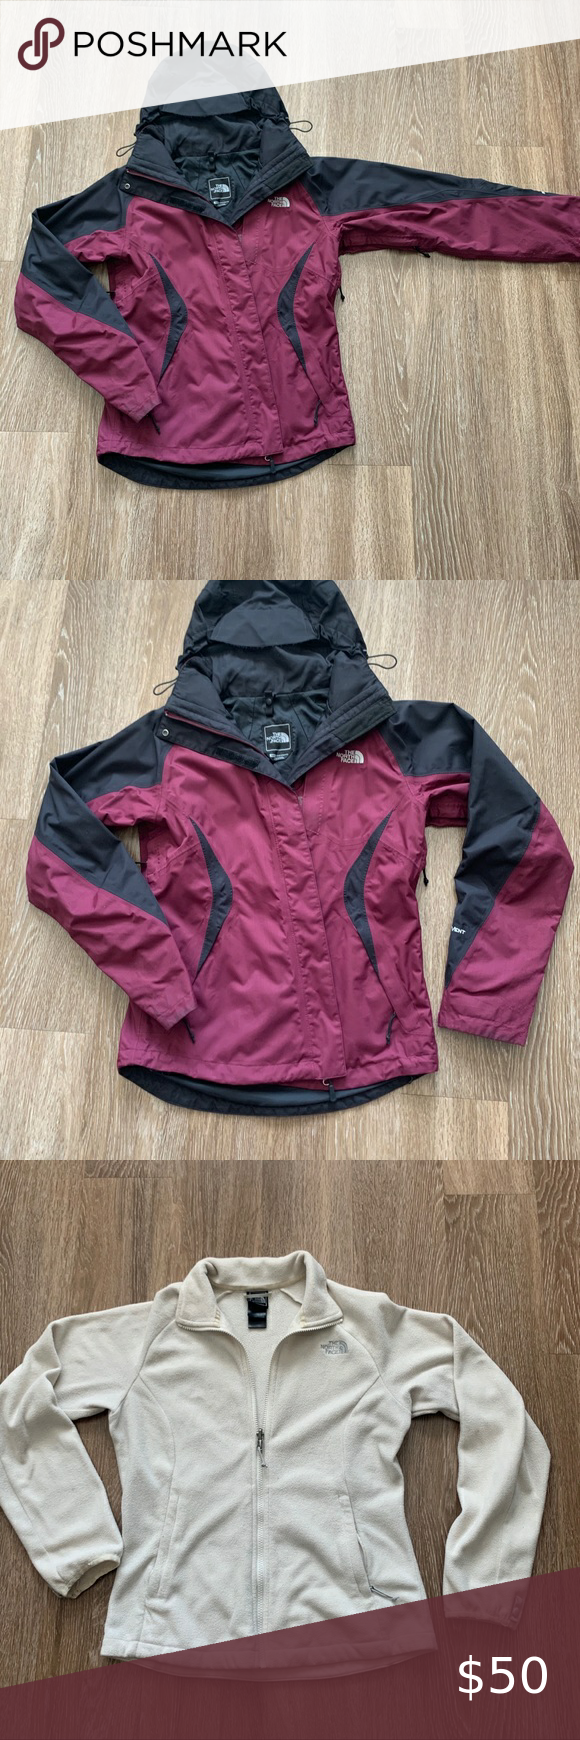 North Face 2 In 1 Jacket And Fleece In 2020 Jackets The North Face Black North Face [ 1740 x 580 Pixel ]